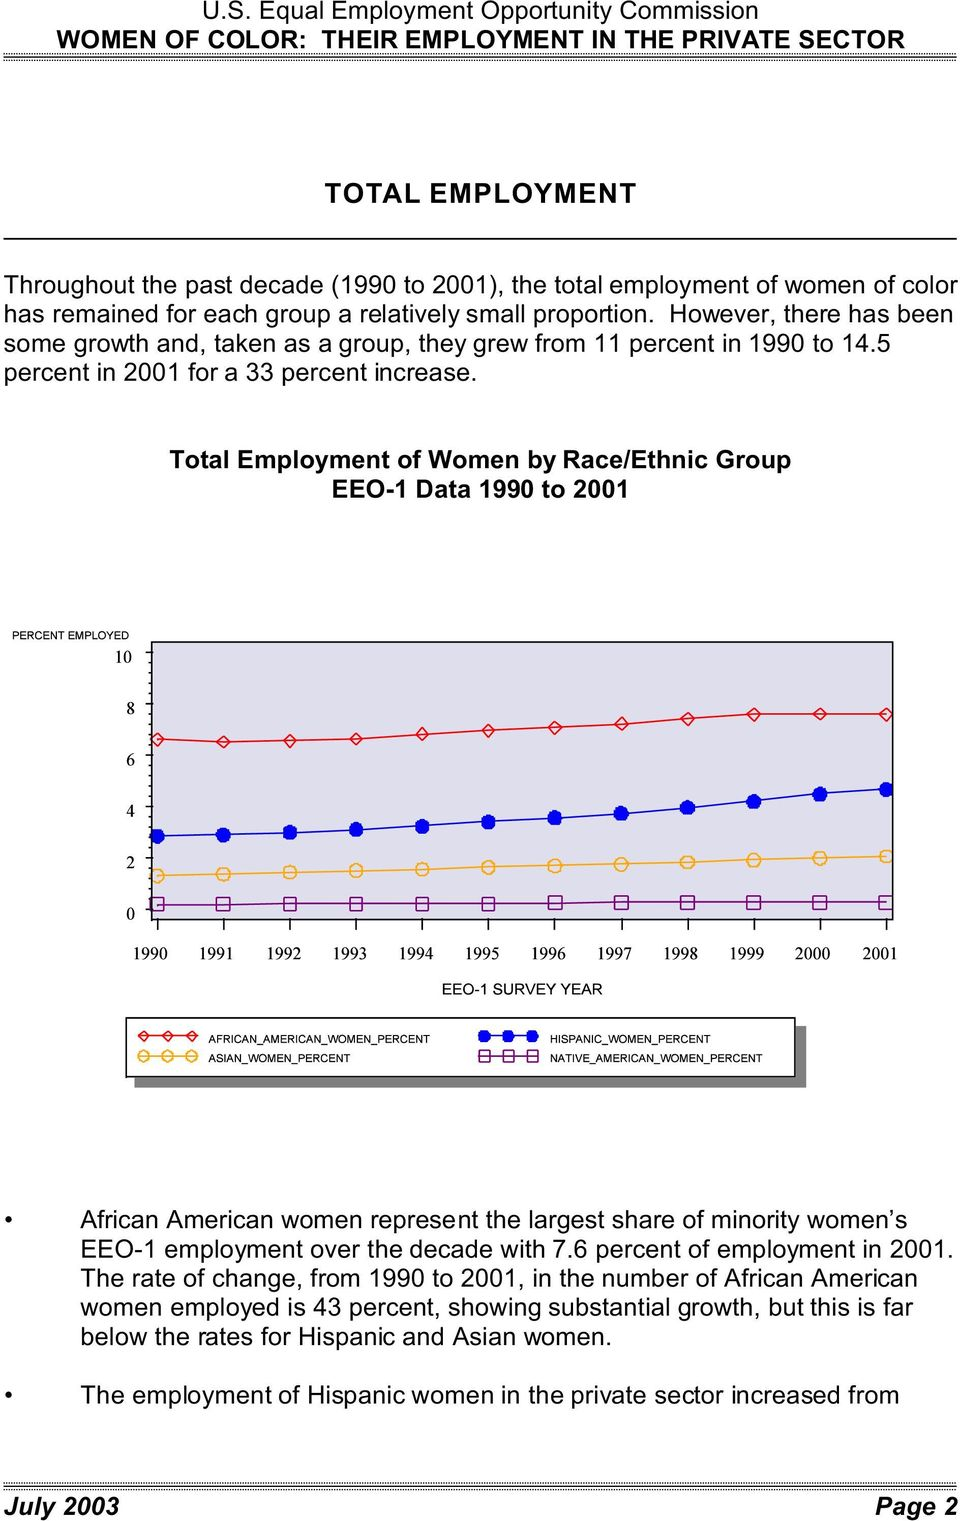 Total Employment of Women by Race/Ethnic Group Data 1990 to 2001 African American women represent the largest share of minority women s employment over the decade with 7.